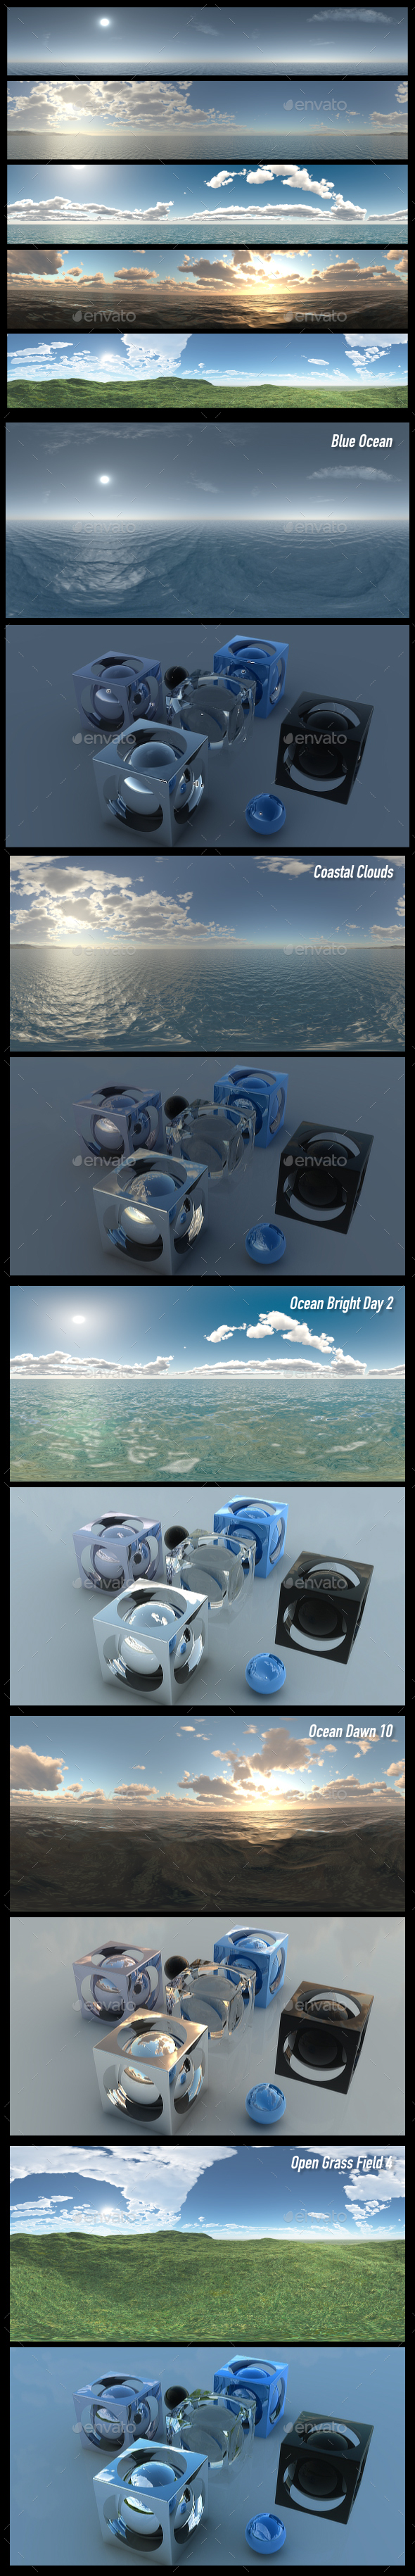 HDRI Pack 11 - 3DOcean Item for Sale